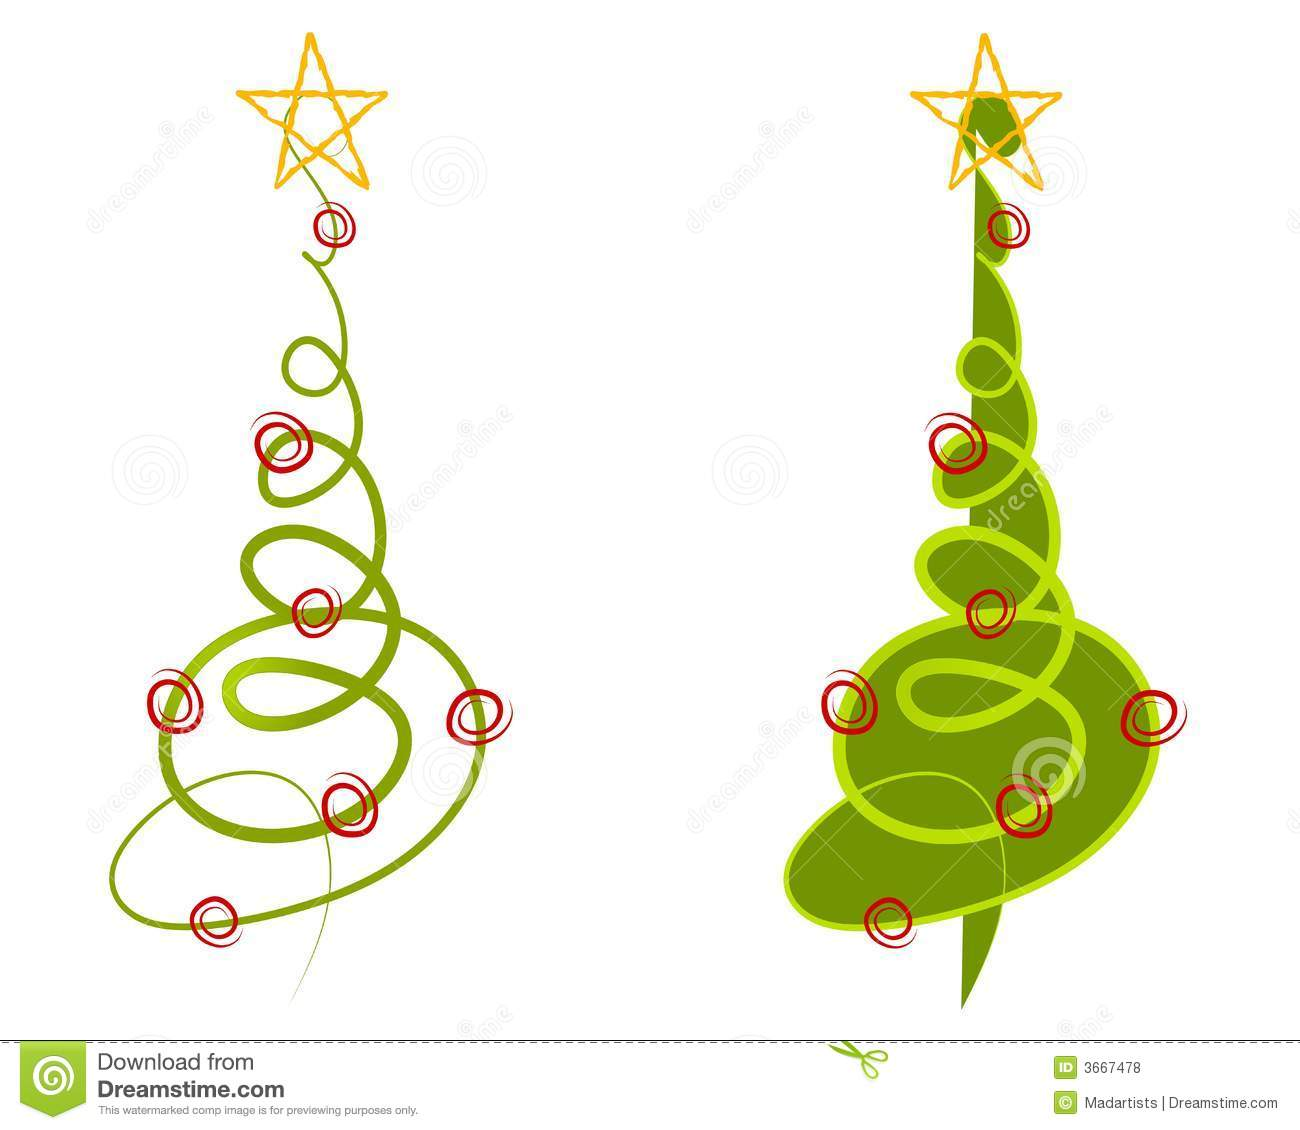 hight resolution of a clip art illustration of your choice of 2 abstract christmas trees made of simple doodled lines in green with decorations